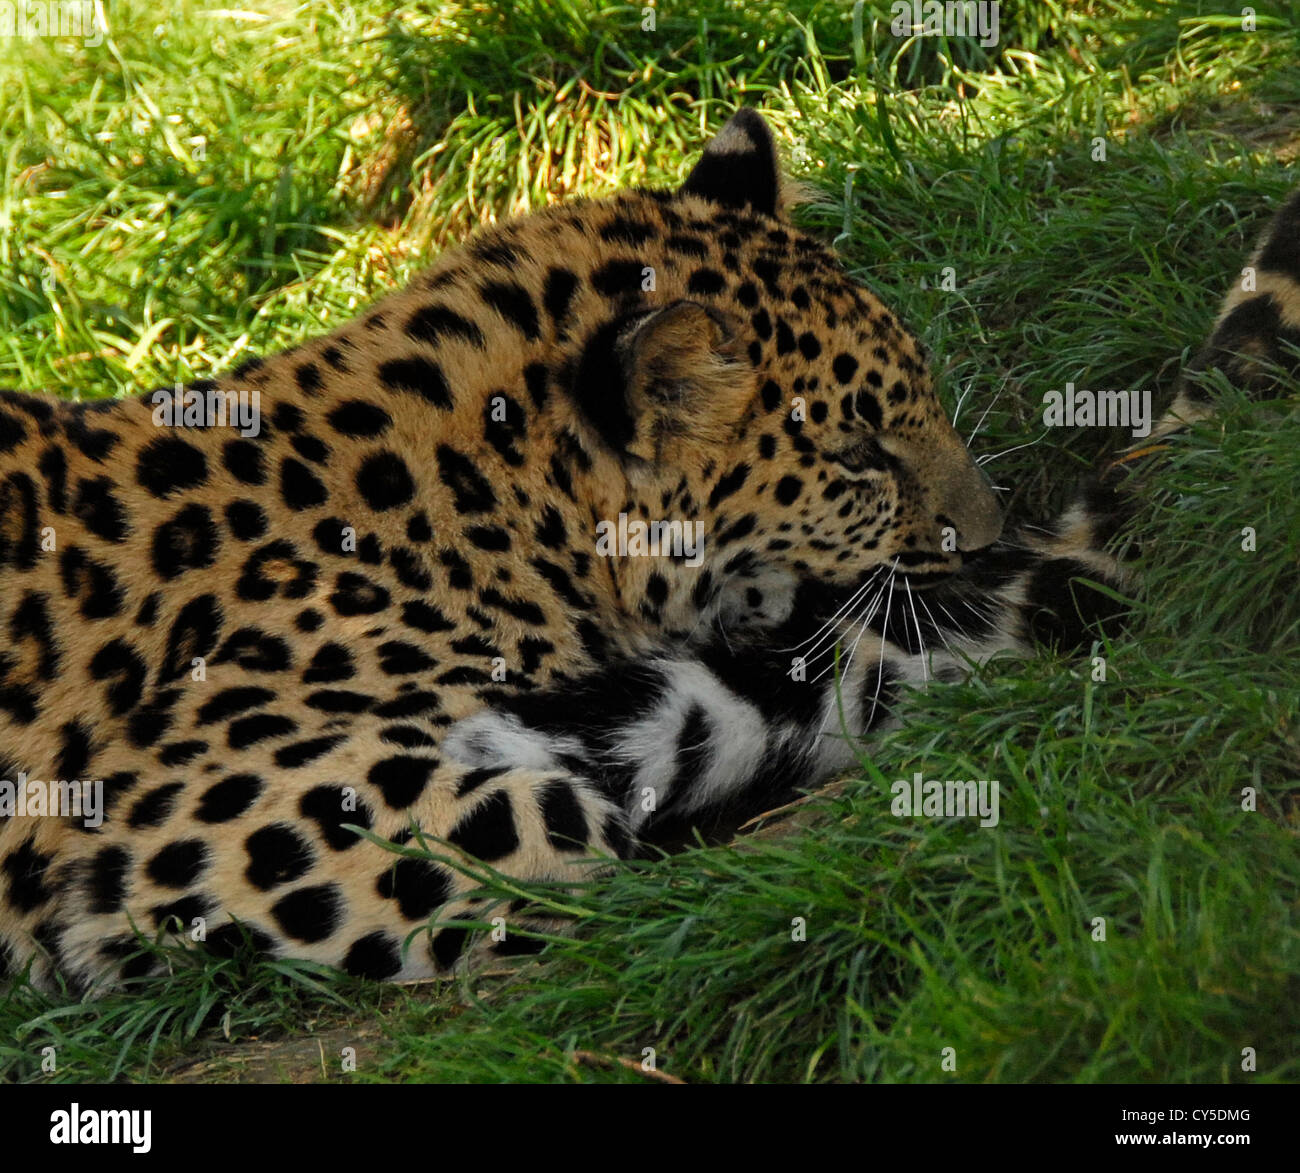 Amur Leopard cub playing with its mother's tail - Stock Image